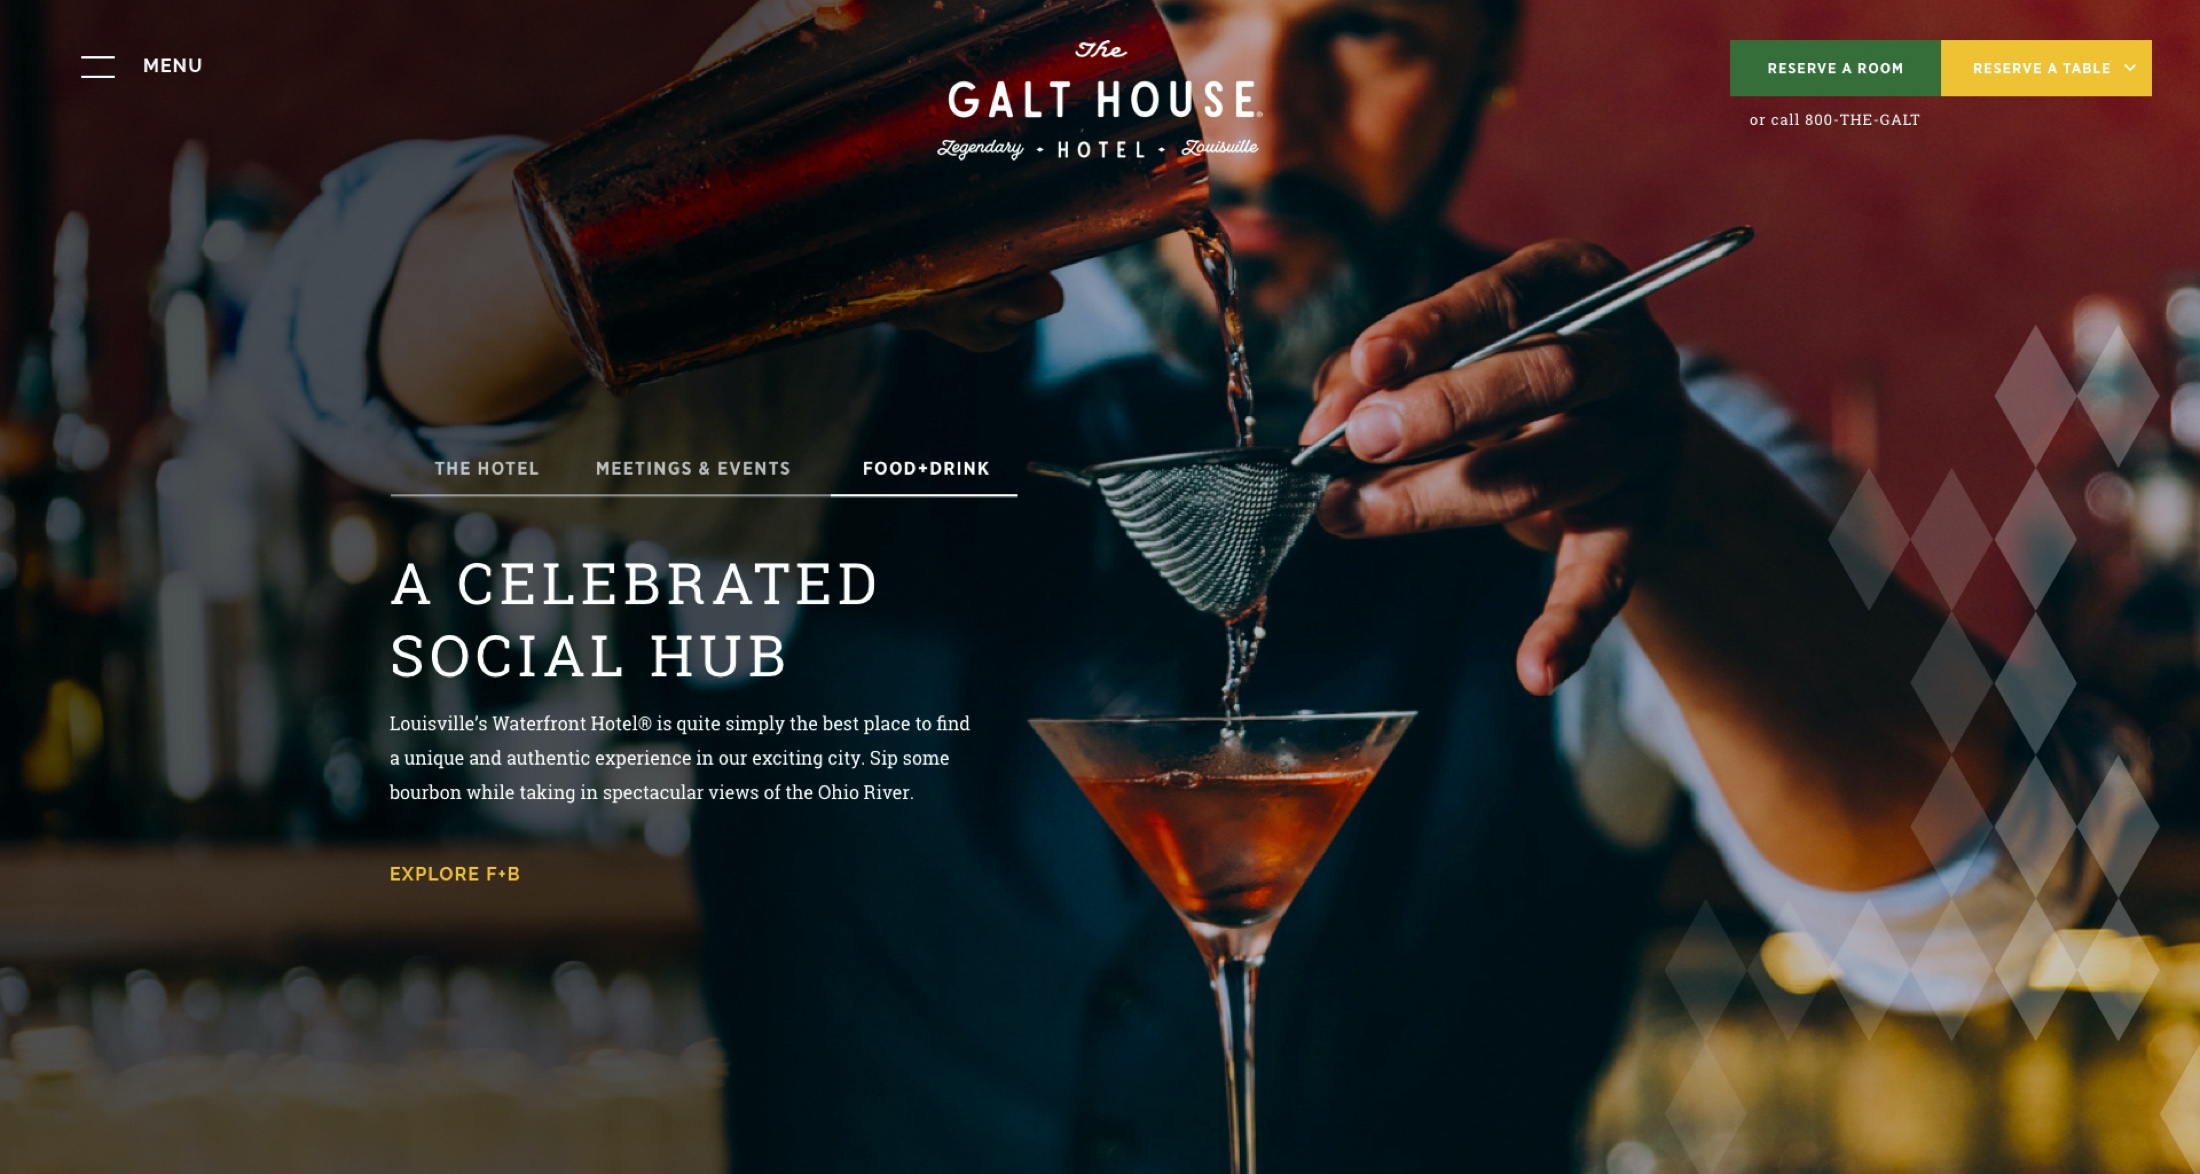 Header of the GaltHouse.com site, featuring a bartender pouring a drink through a strainer.